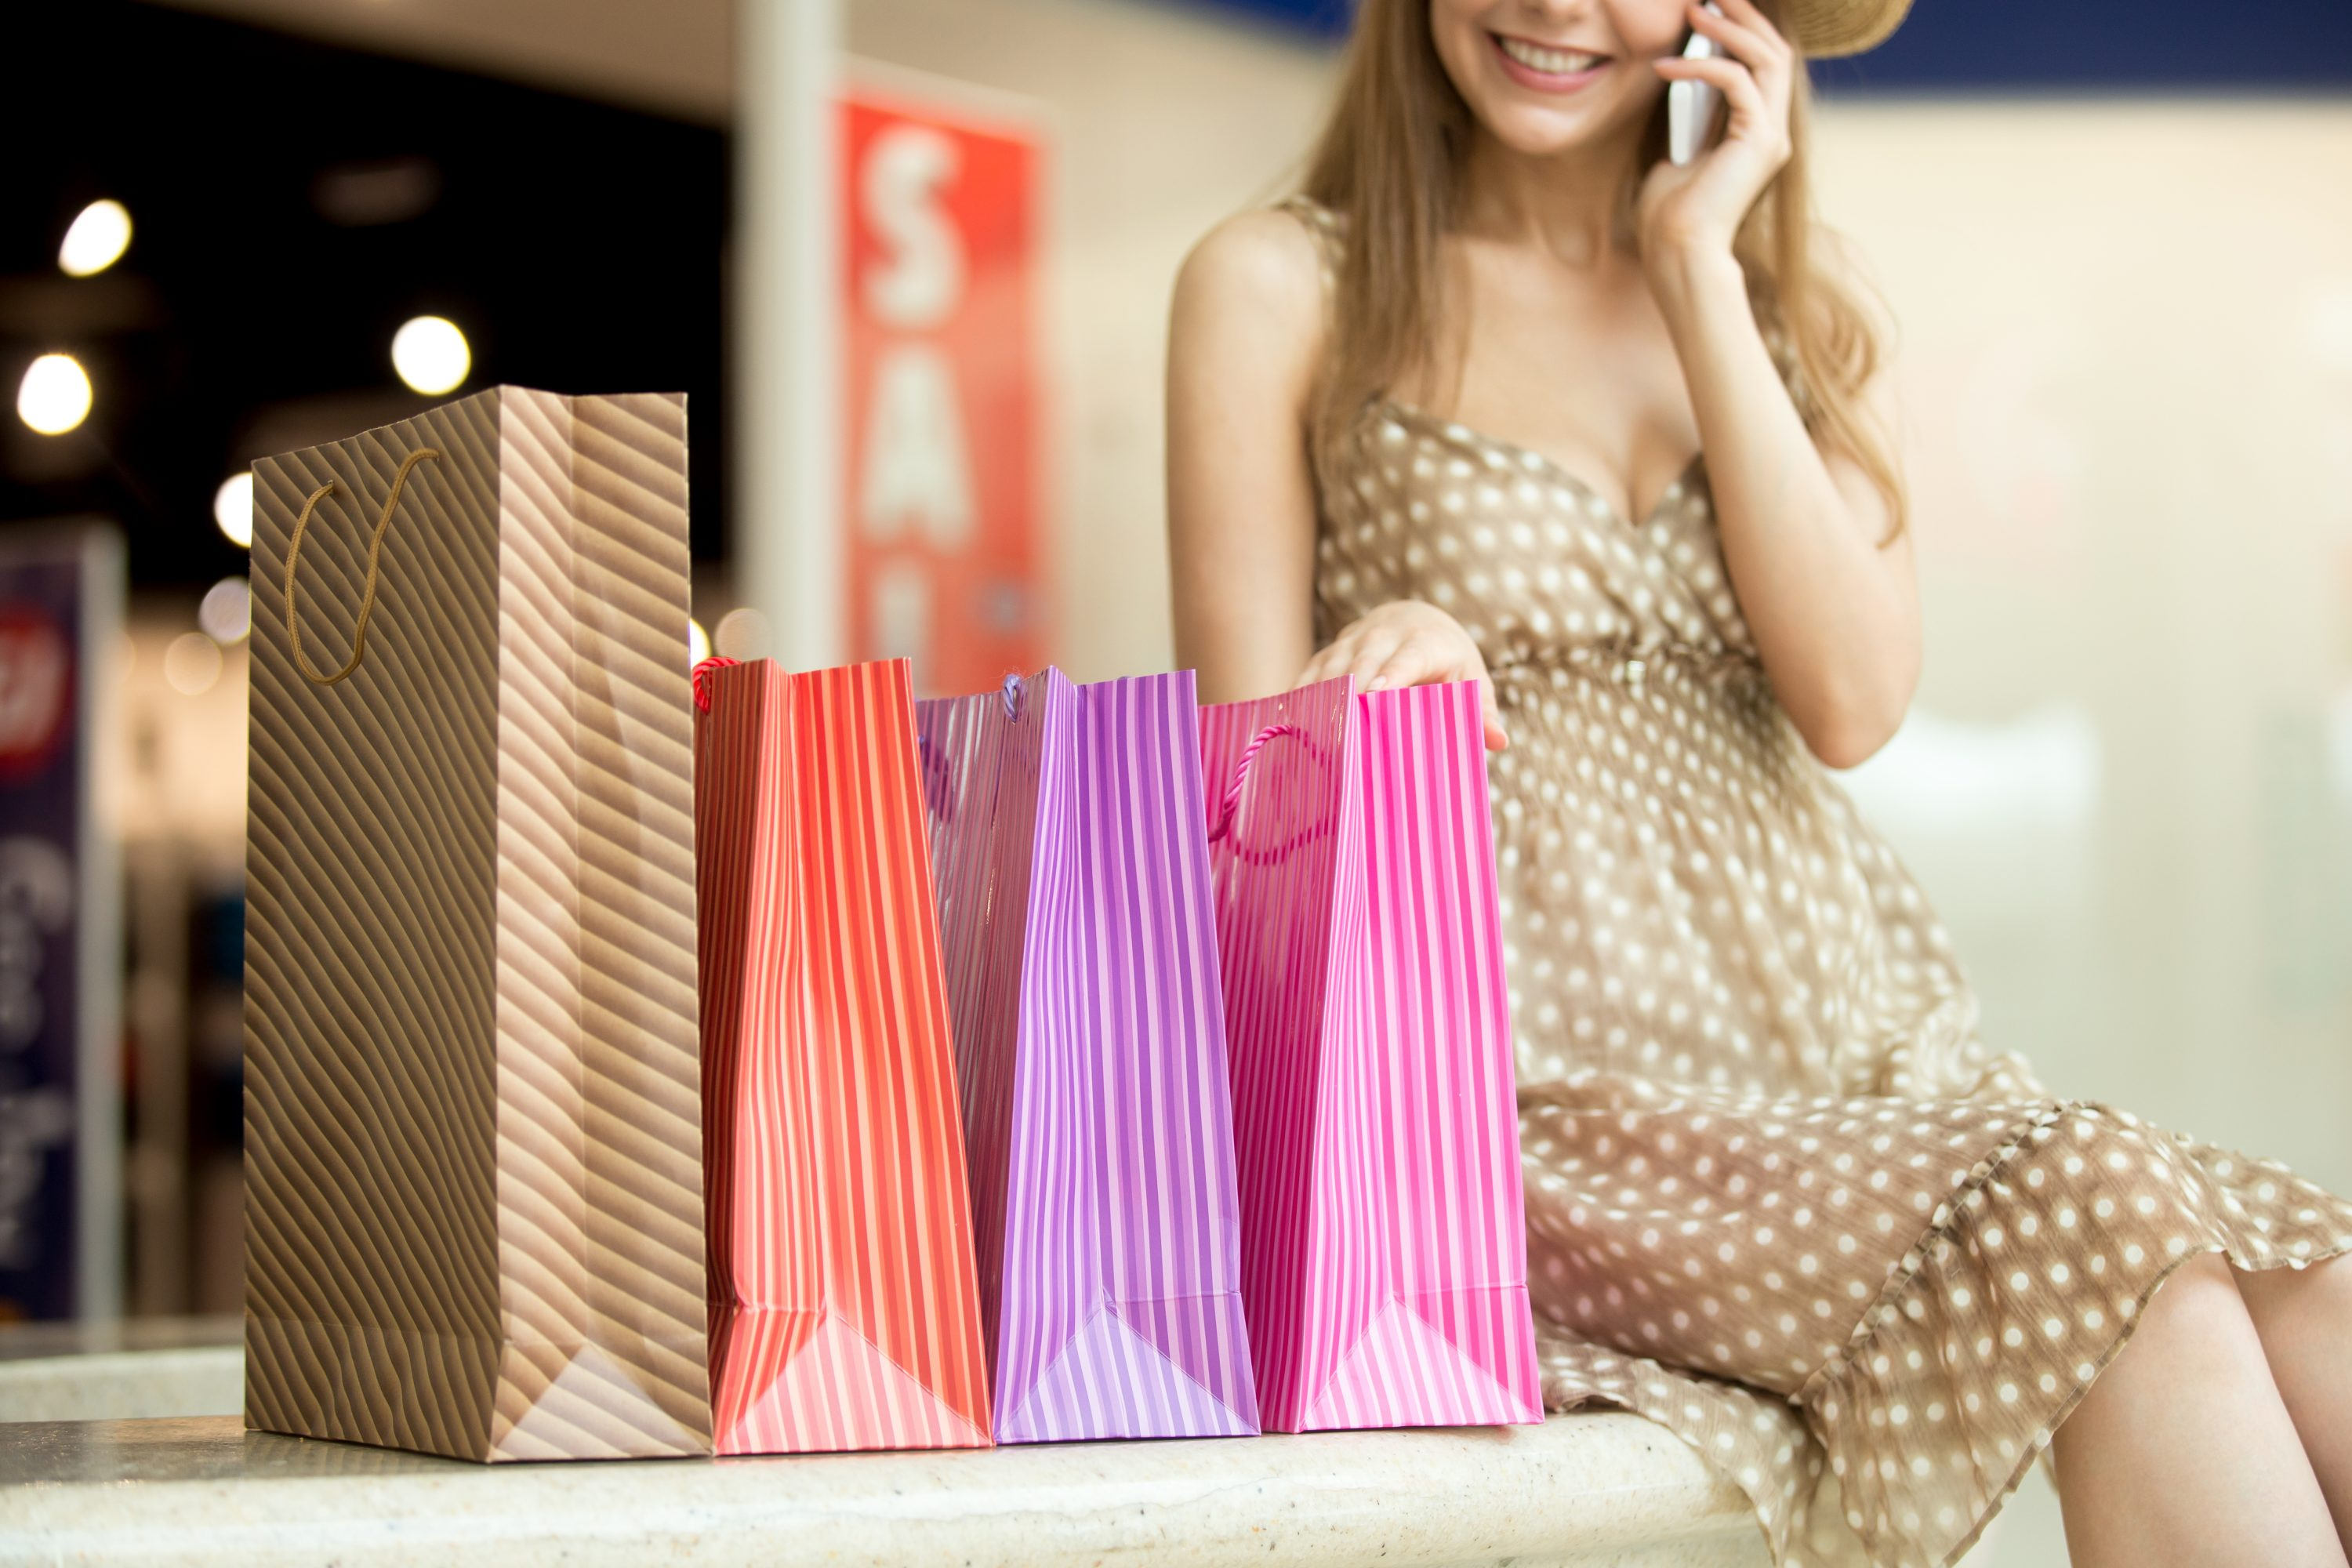 Close-up of beautiful smiling young shopper woman sitting with shopping paper bags talking on phone, making call. Focus on bags. Fashion, sale, shopping concept. Sale sign on background